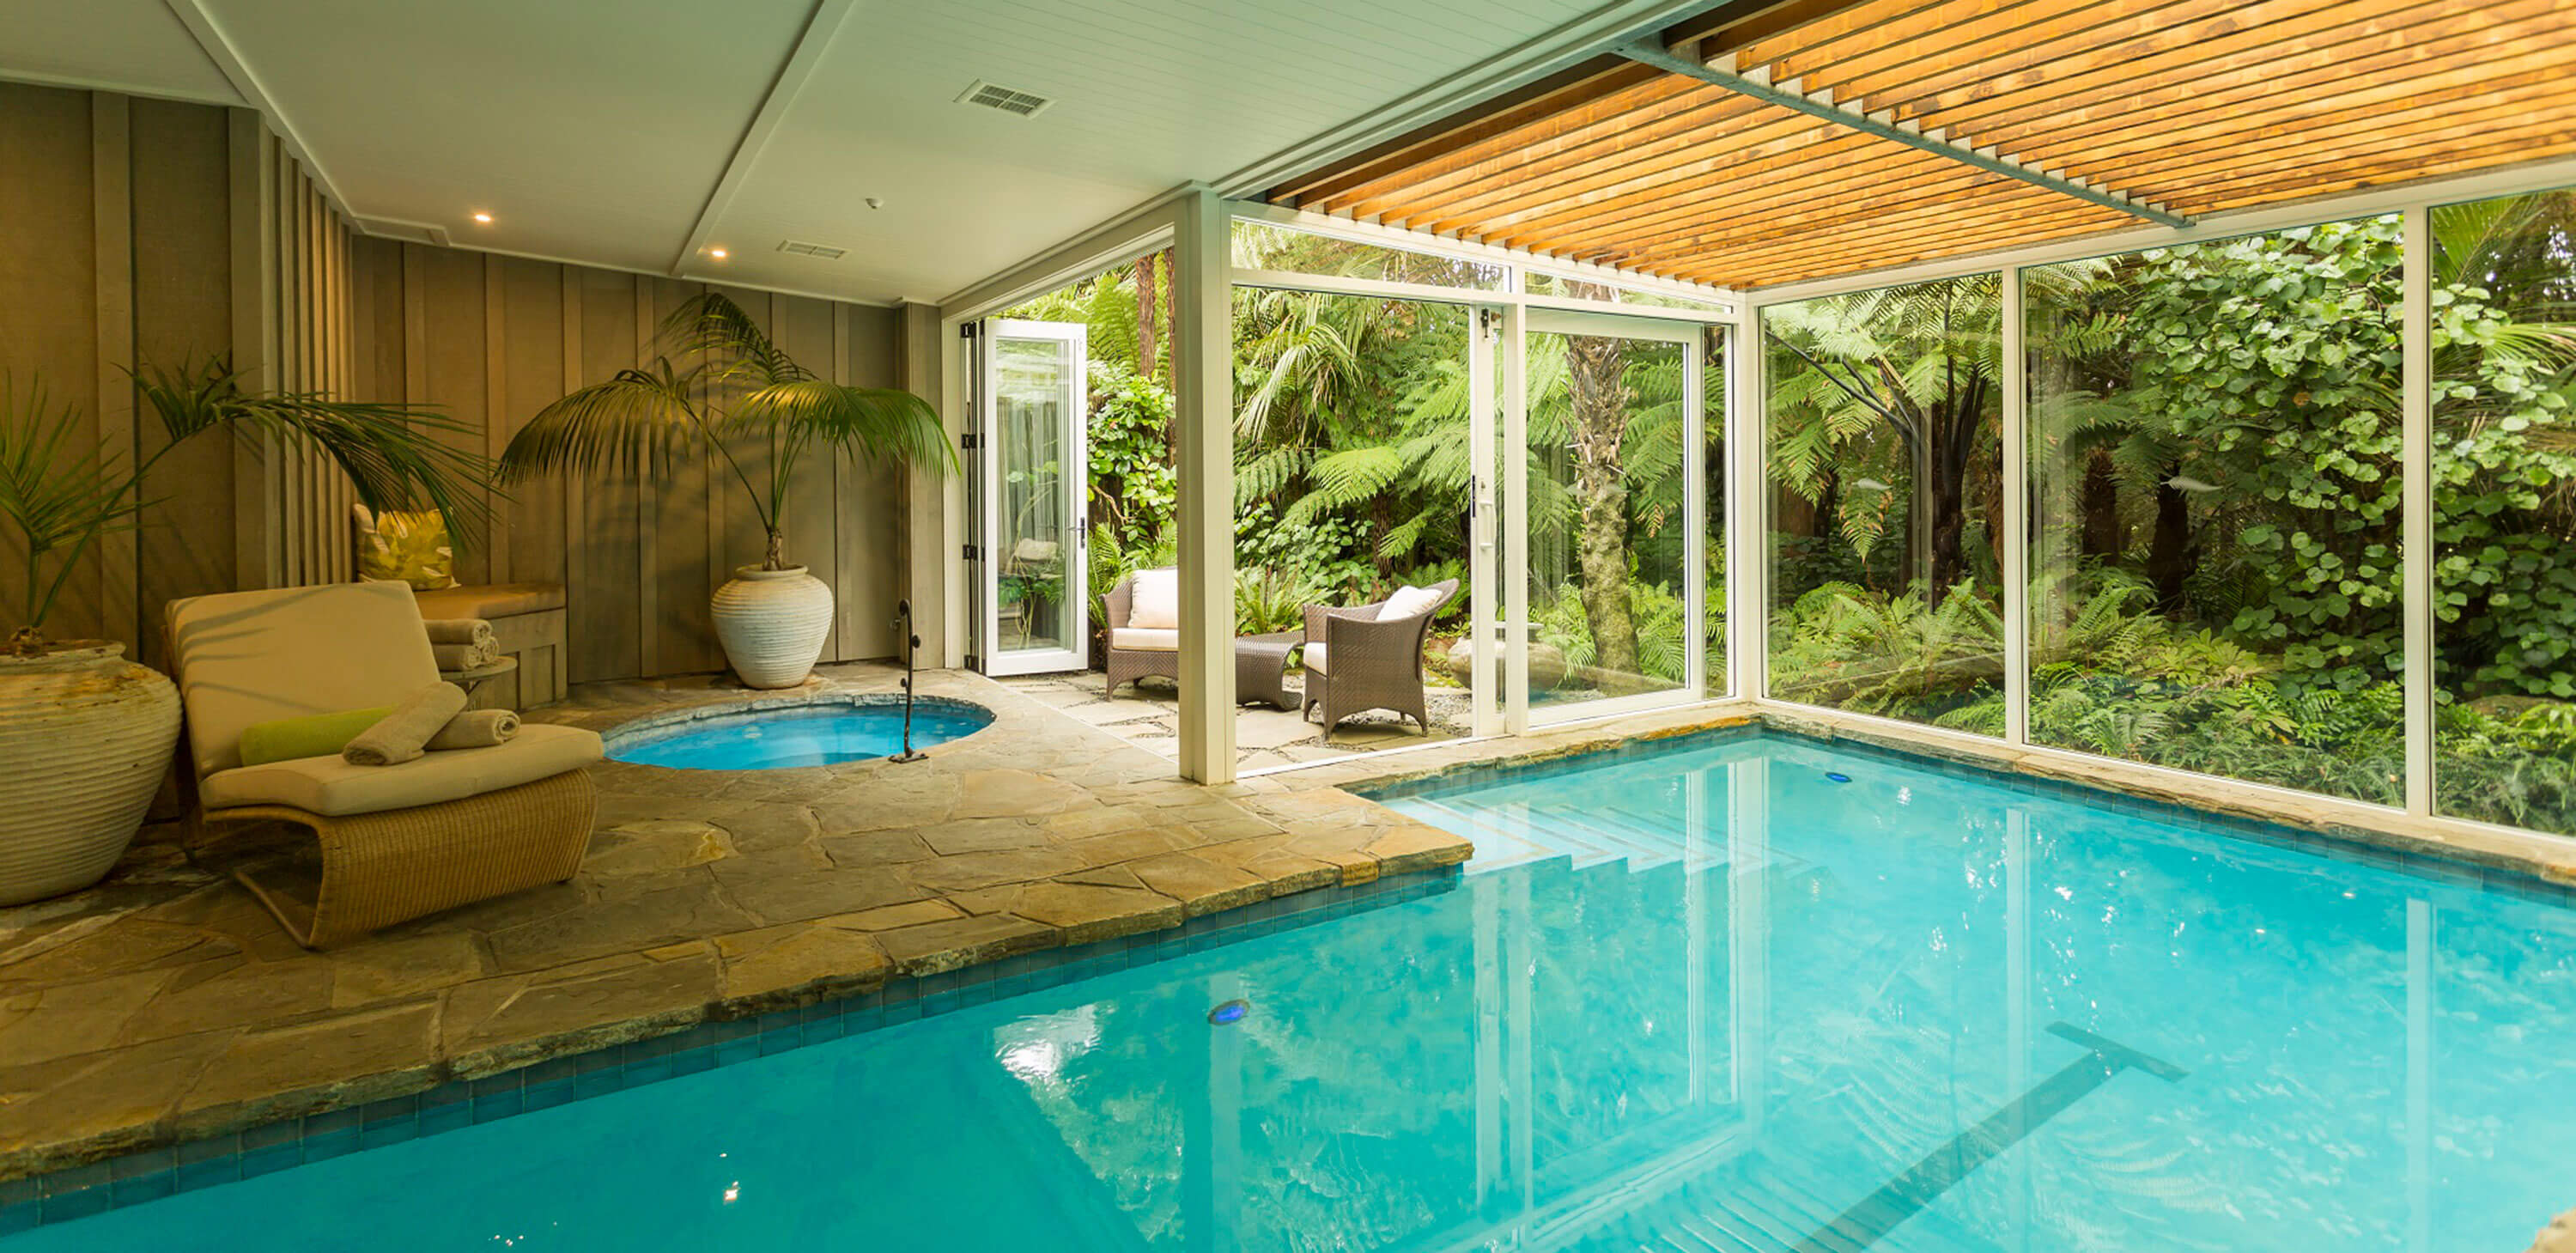 Pool facilities at Kauri Cliffs